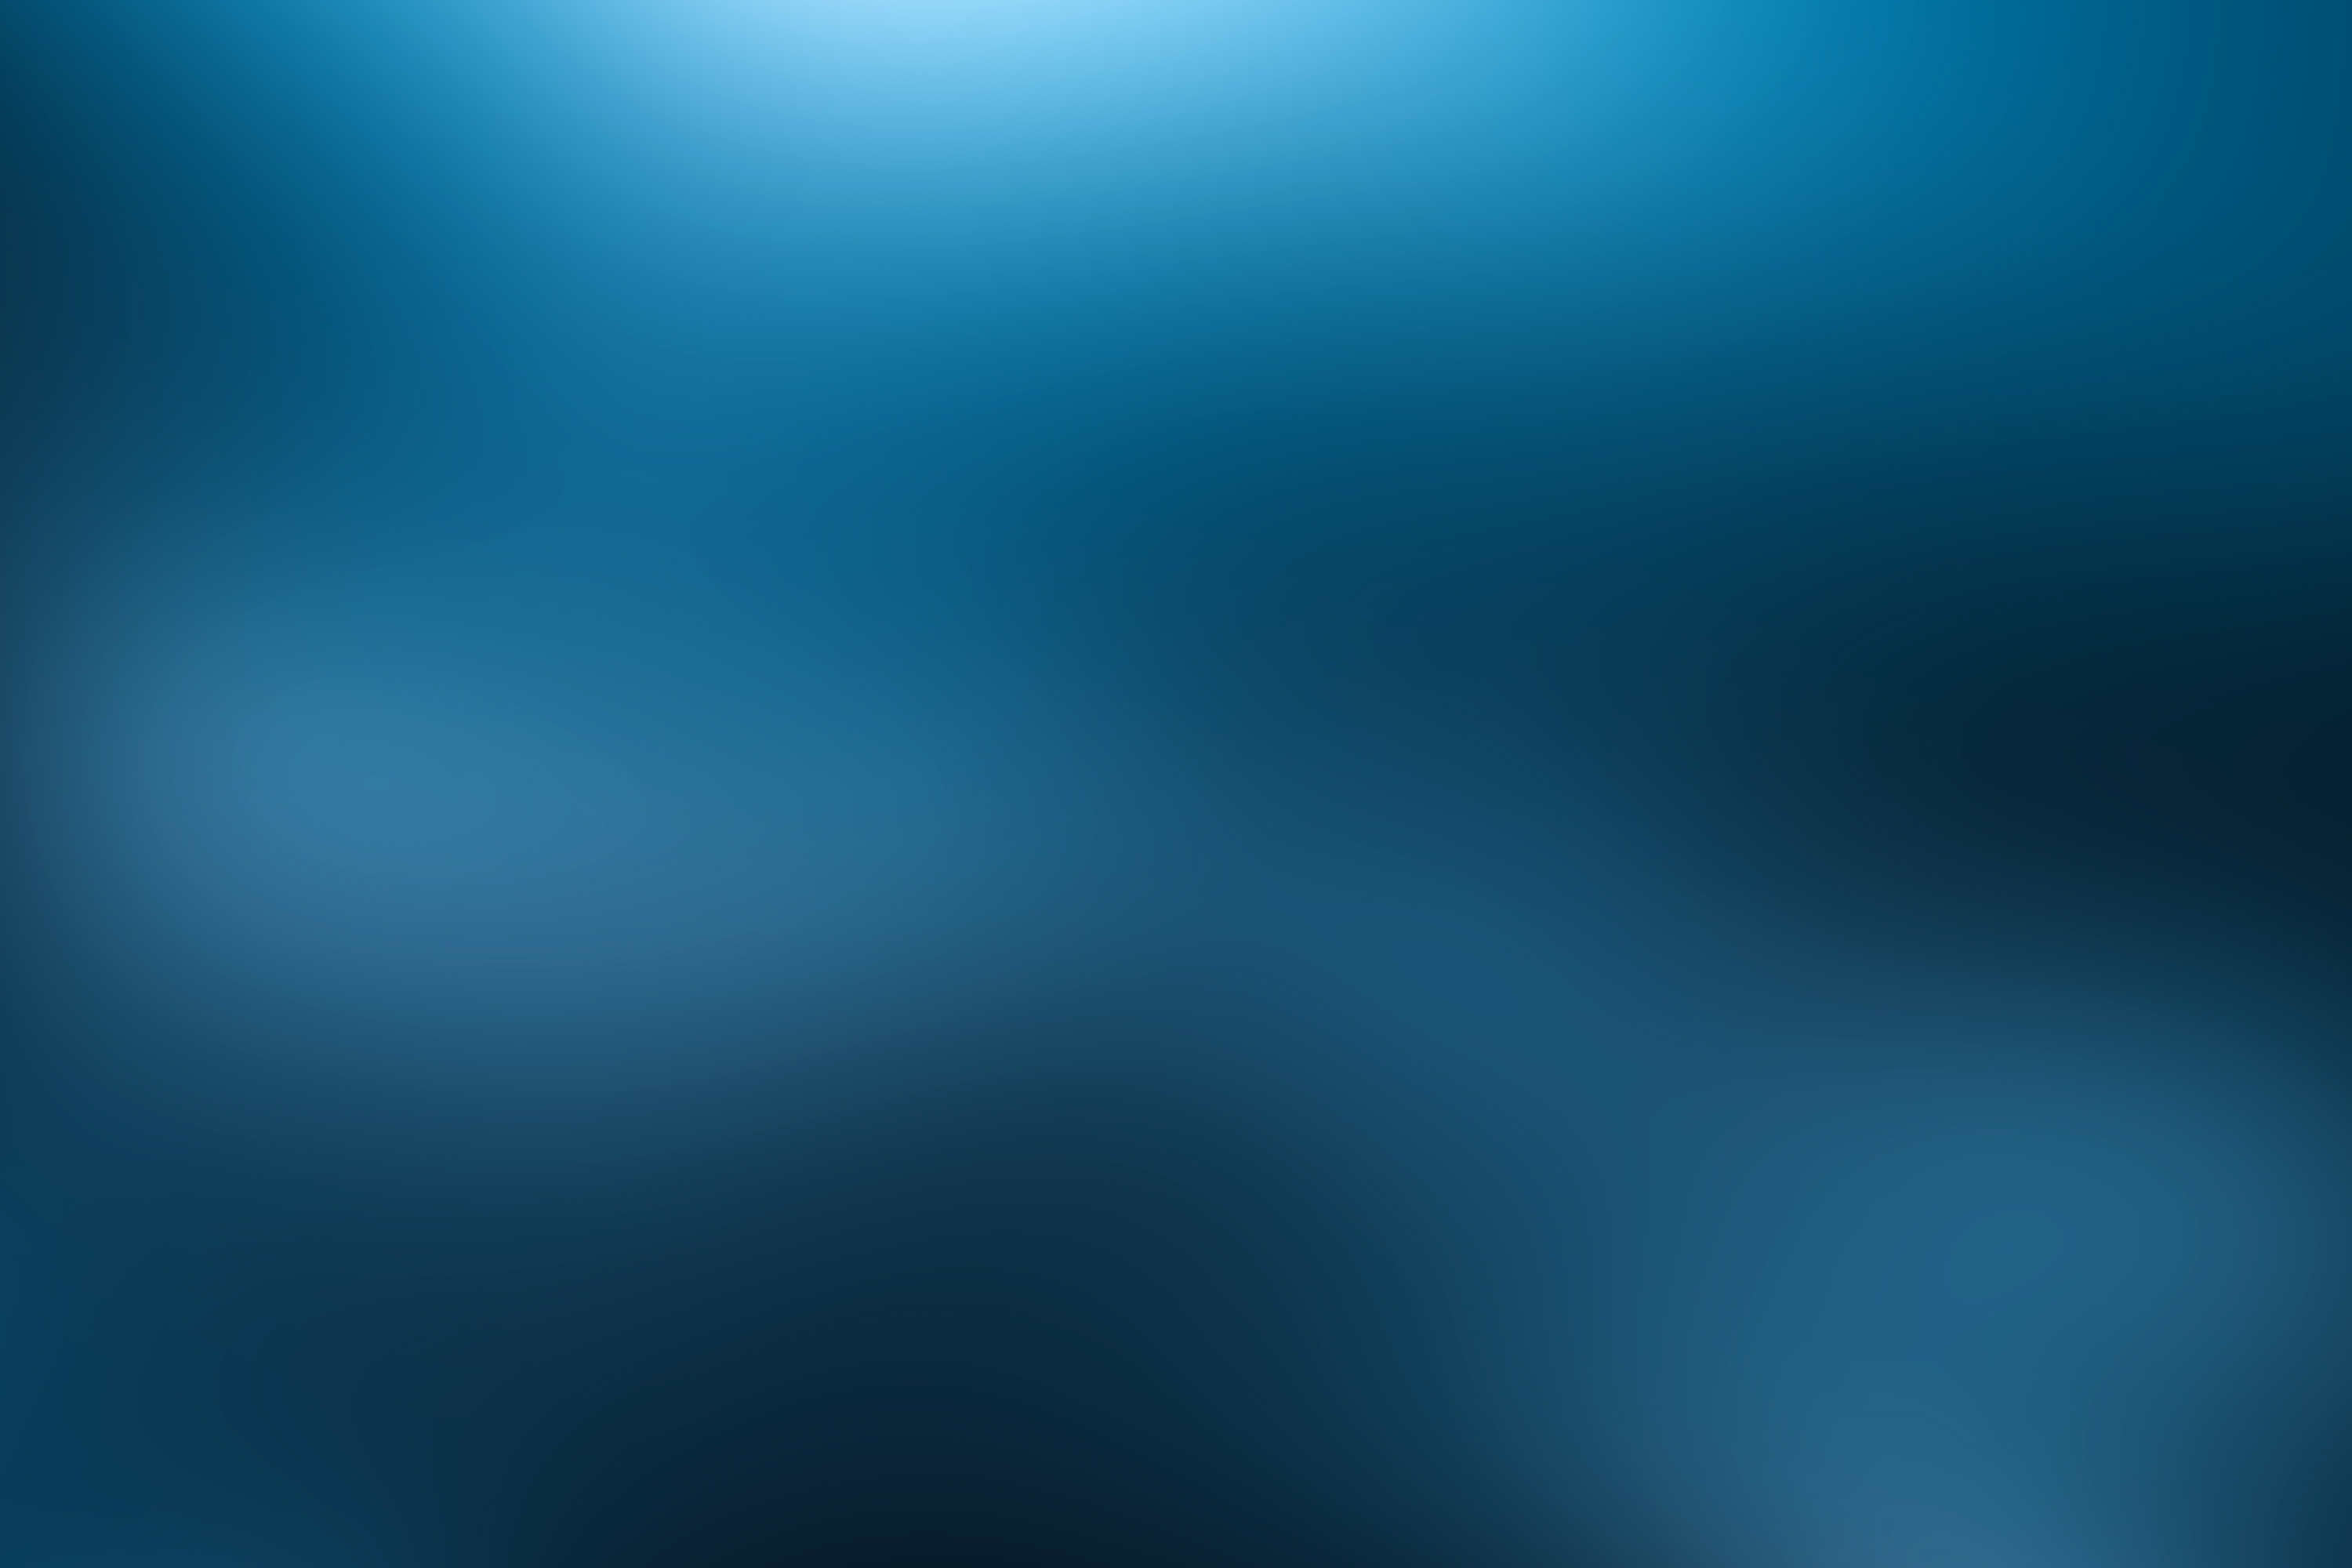 Xiaomi Redmi Note 5 Pro Wallpaper With Abstract Blue Light: Blur Wallpapers 18